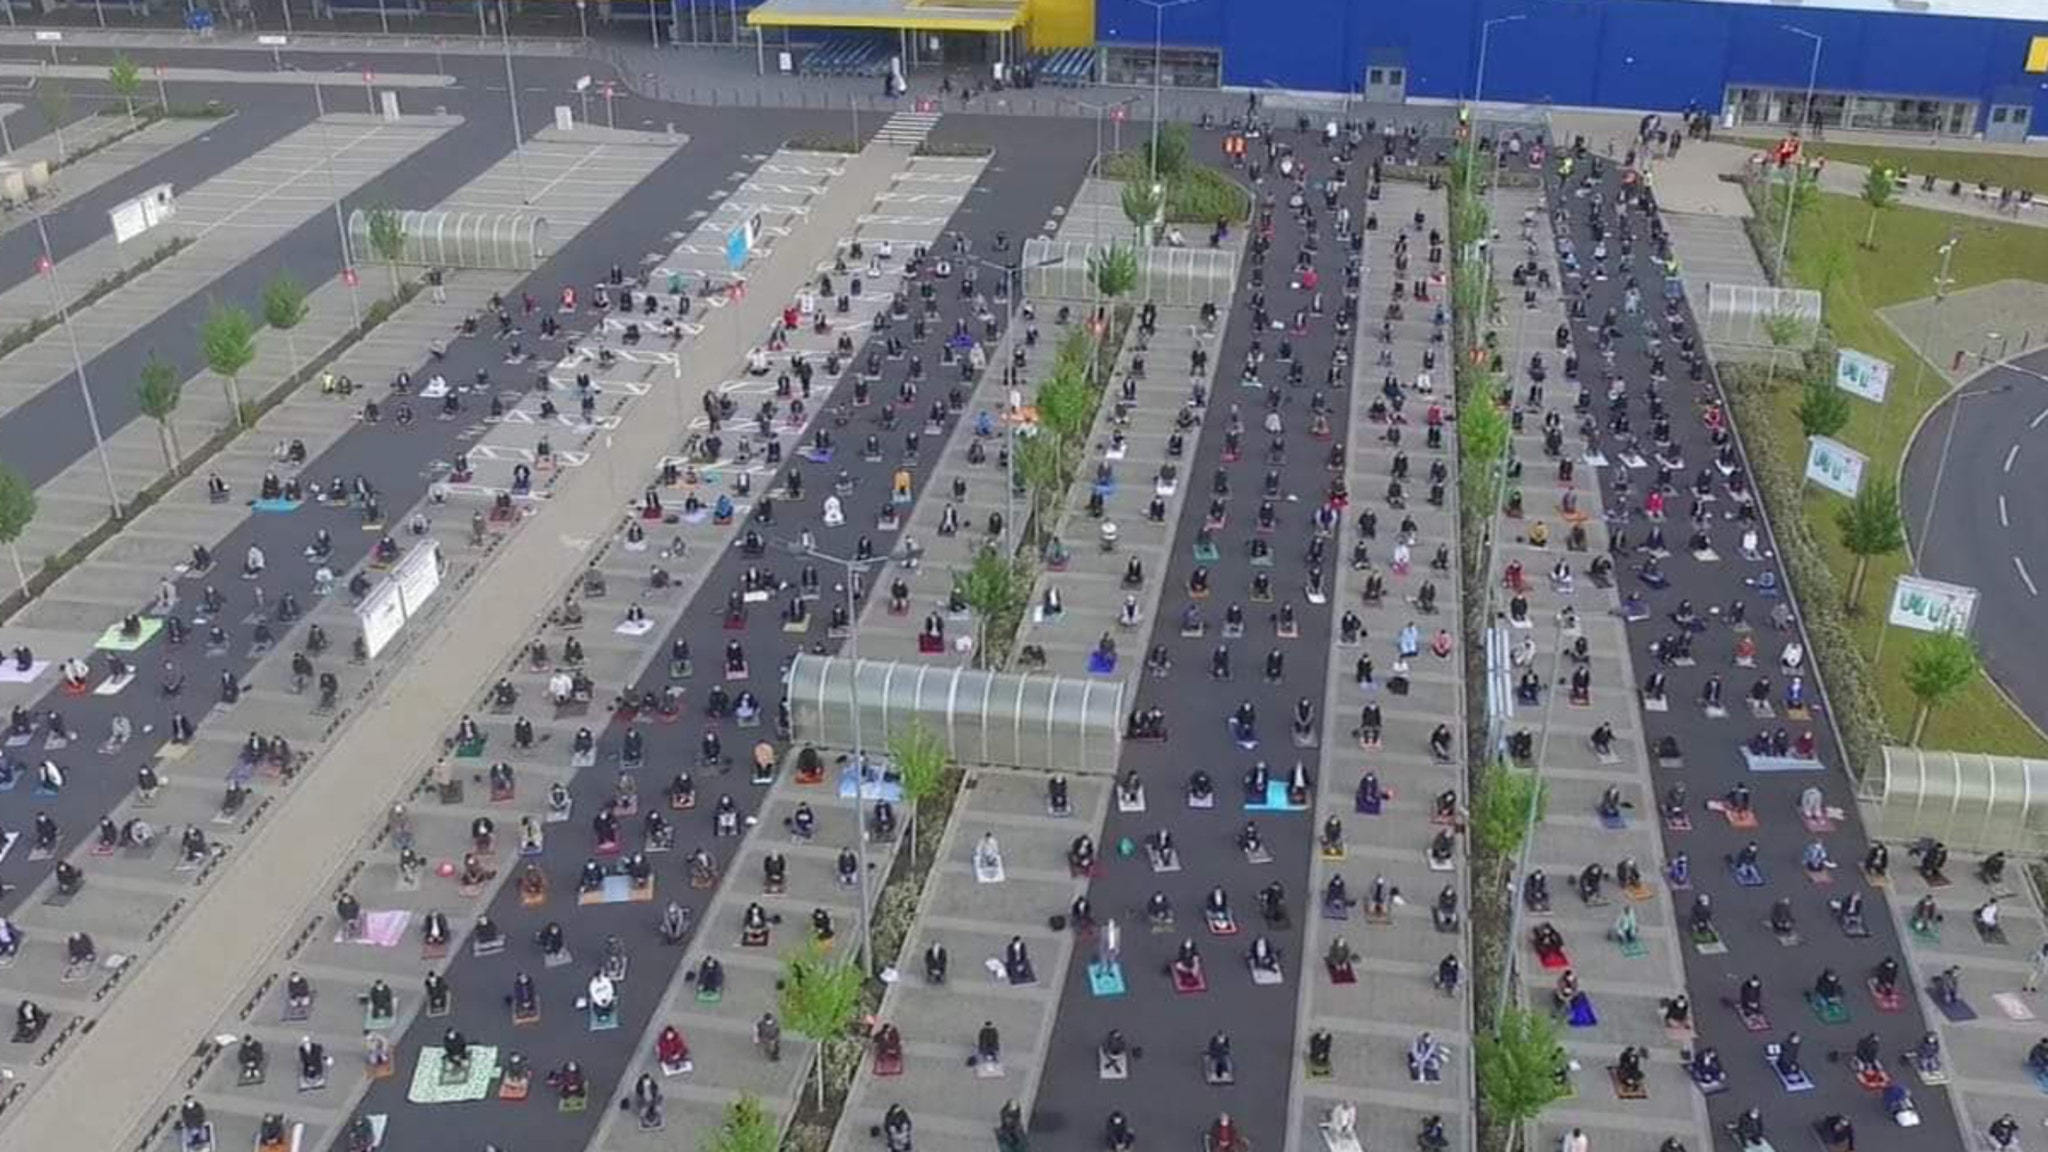 IKEA Muslims Gather in Parking Lot ... Perfect Spot for Safe Group Prayer